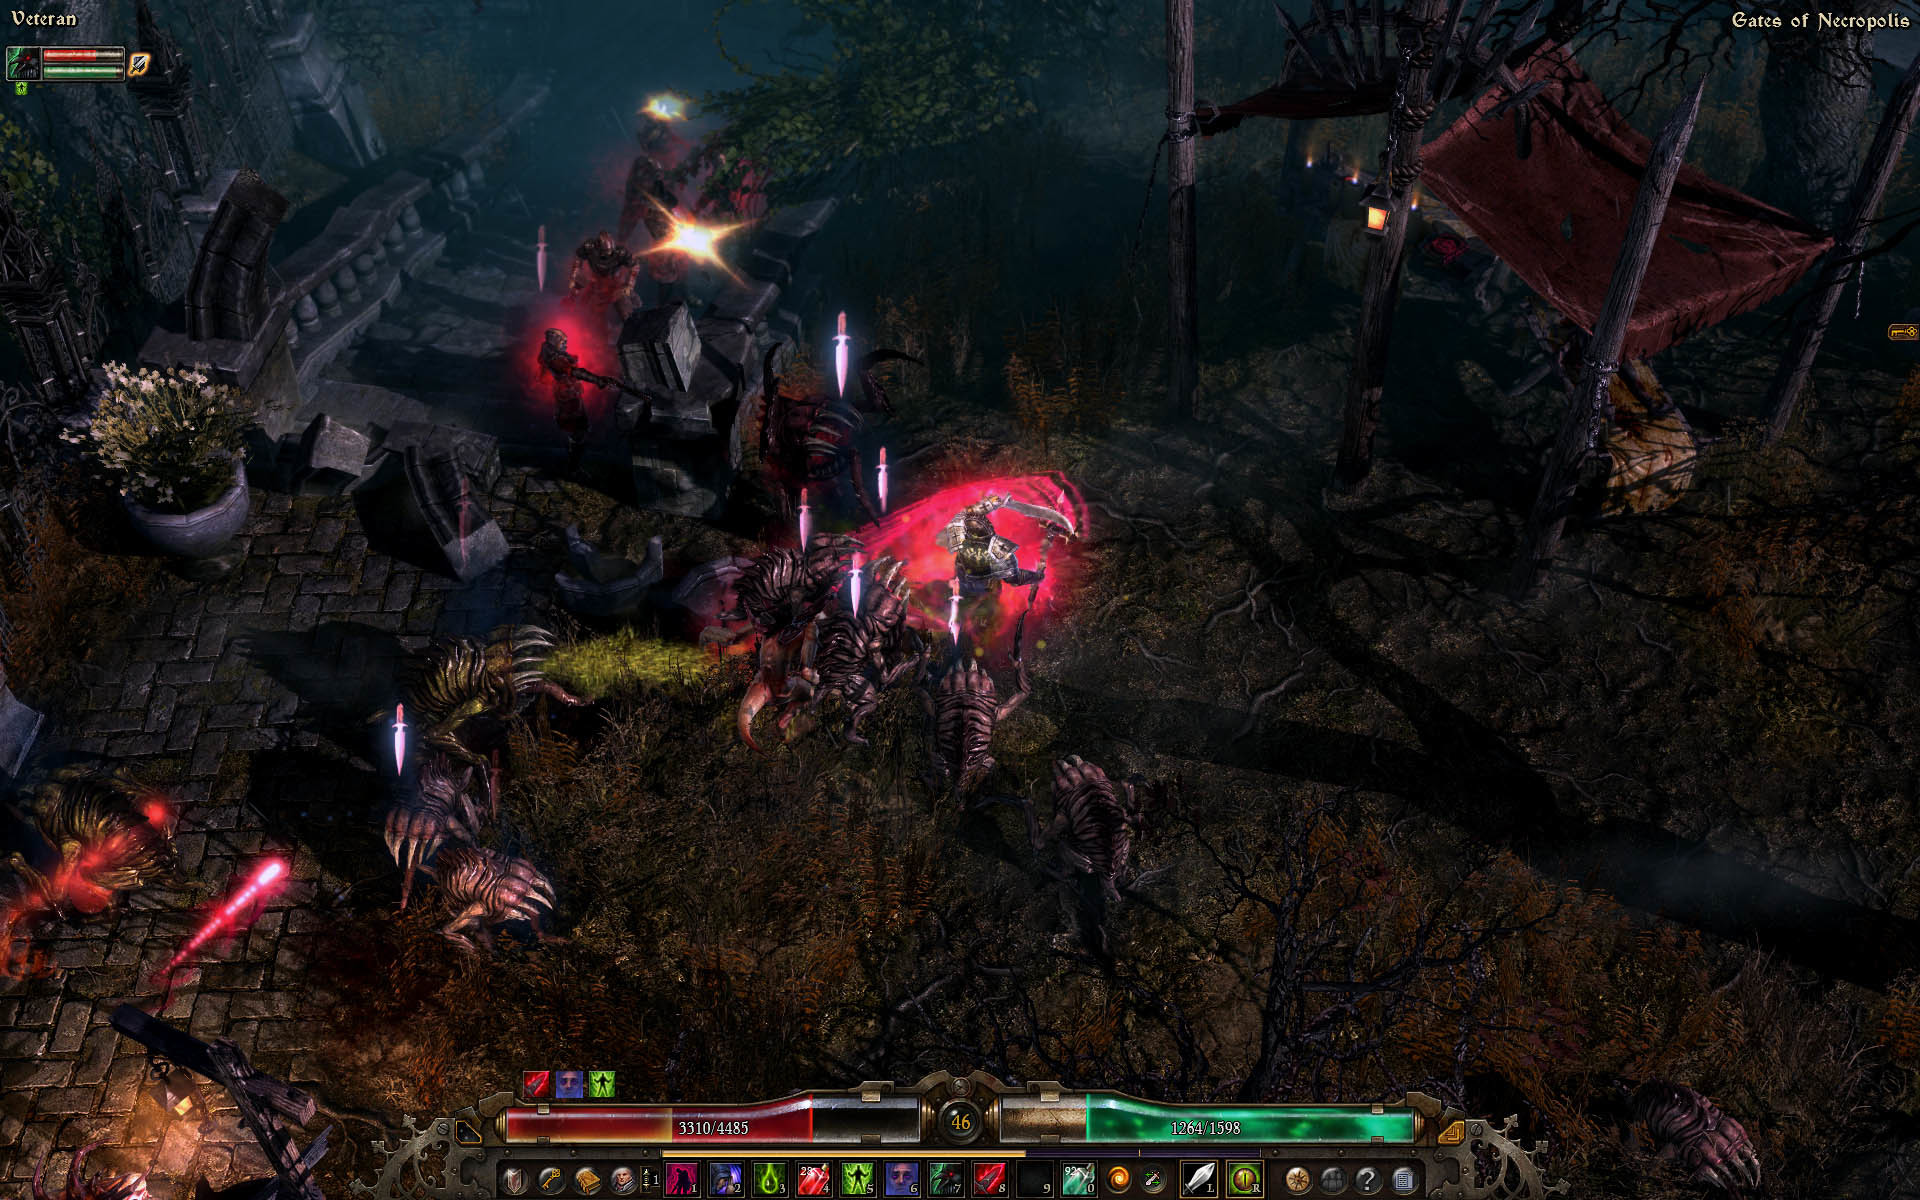 We at Crate Entertainment are thrilled to announce that Grim Dawn has now  sold over one million copies on PC, plus over 200k copies of the Crucible  arena …